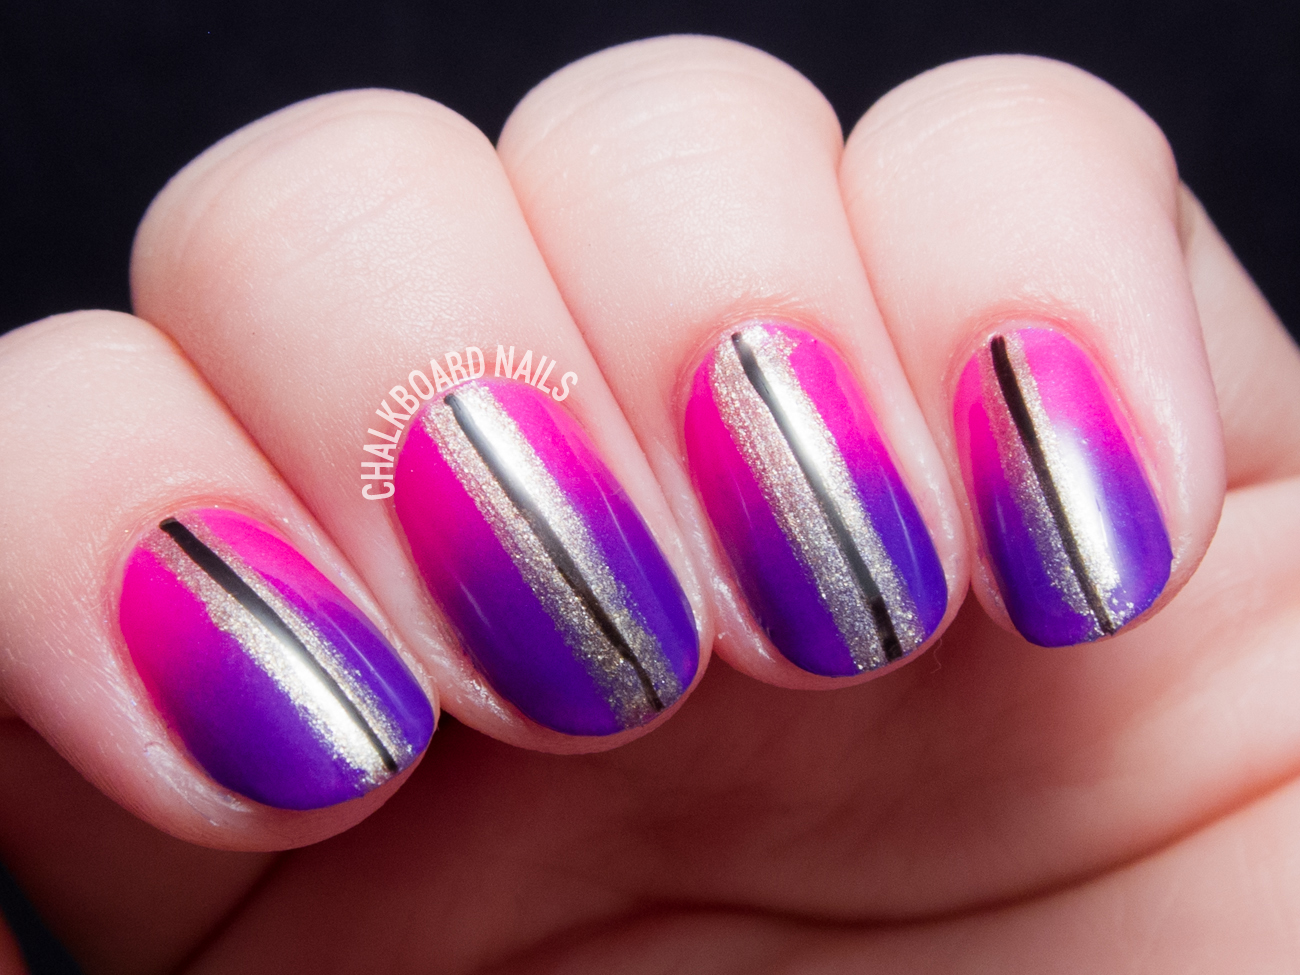 EverGlaze Gradient Nail Art by @chalkboardnails